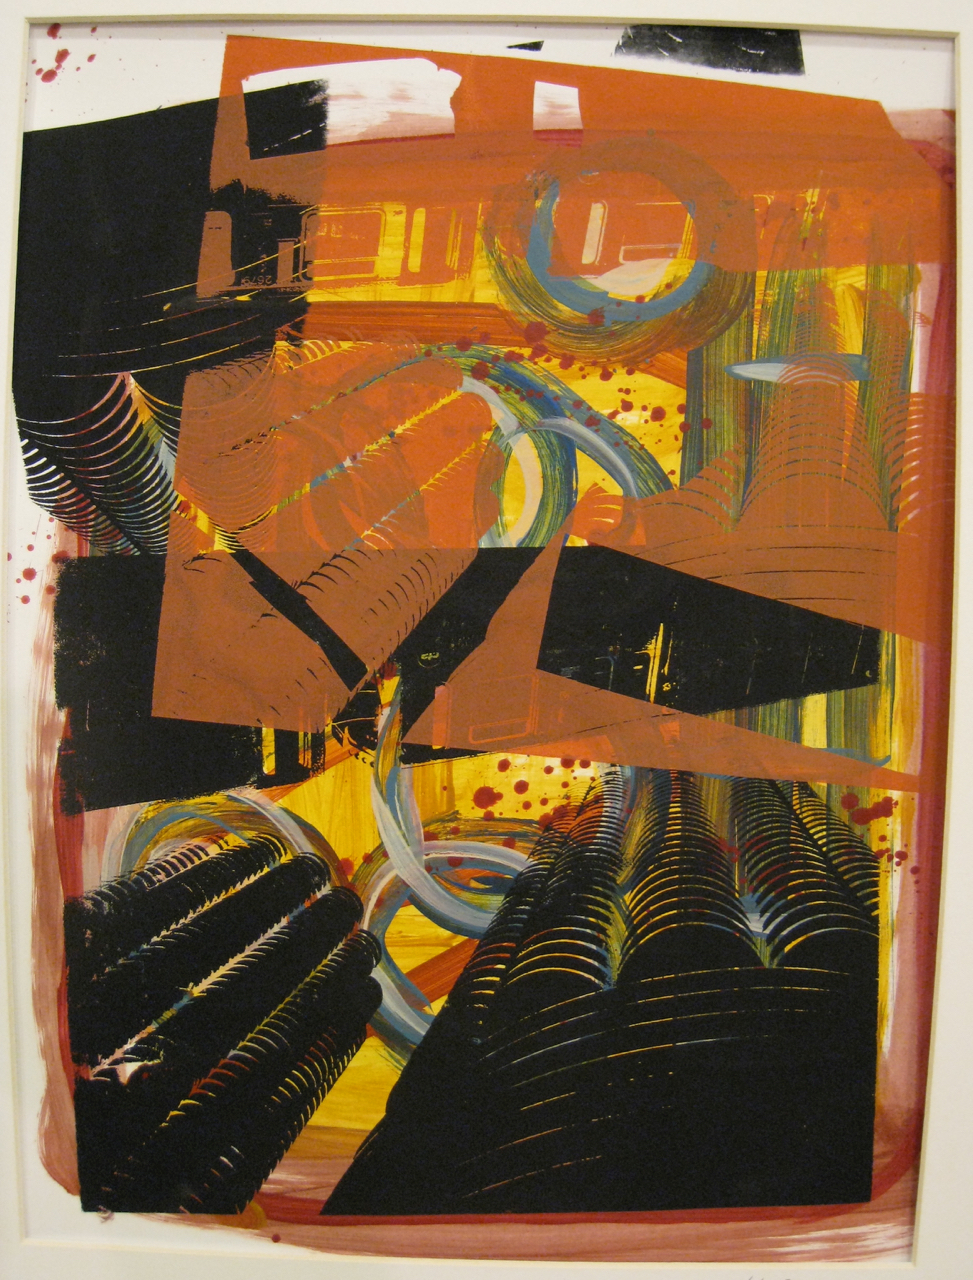 El Marina, screen print on paper, 14x17, 2008, SOLD